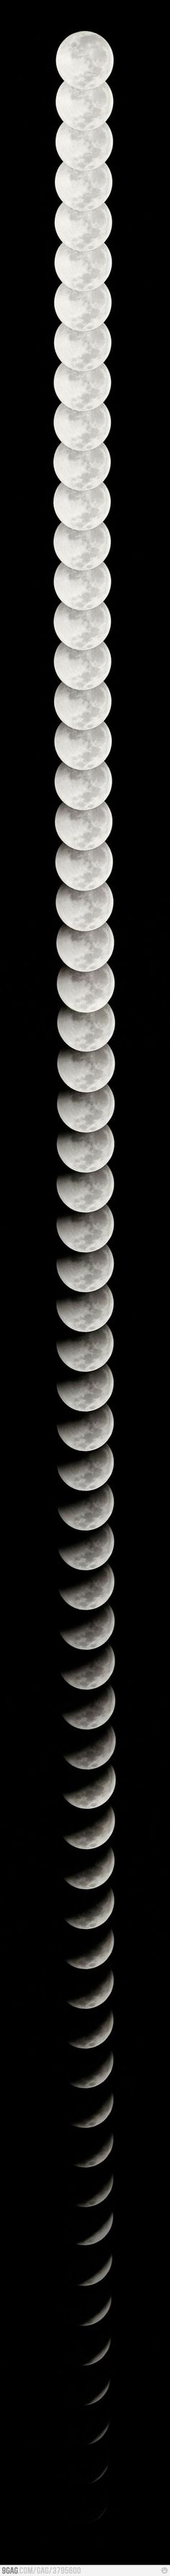 Just a moon